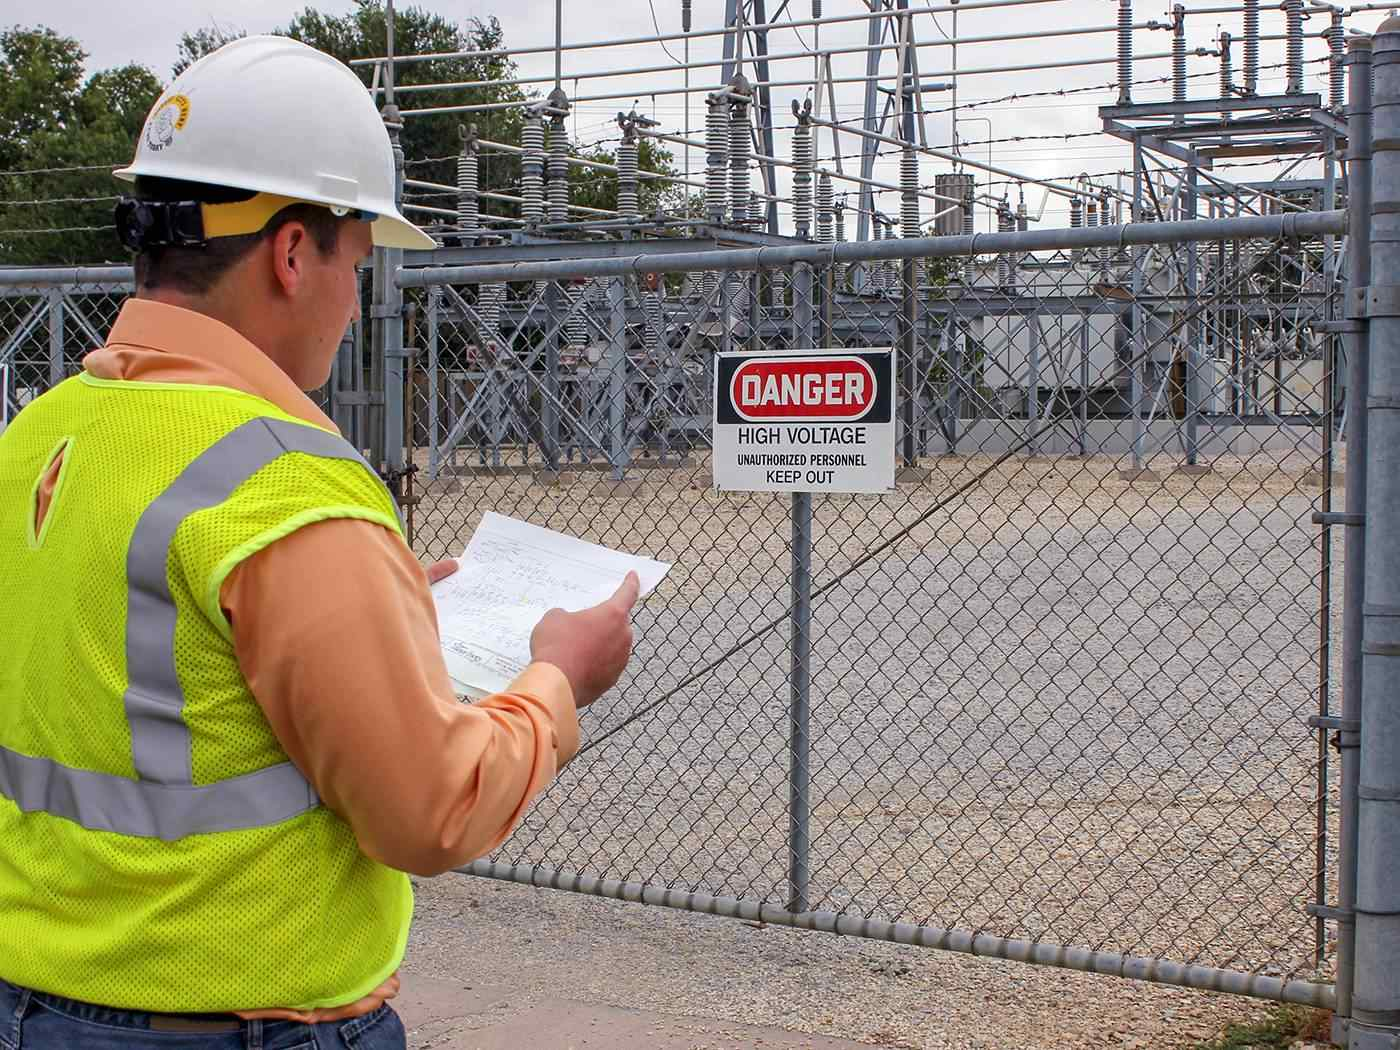 WSU intern working at electric substation.